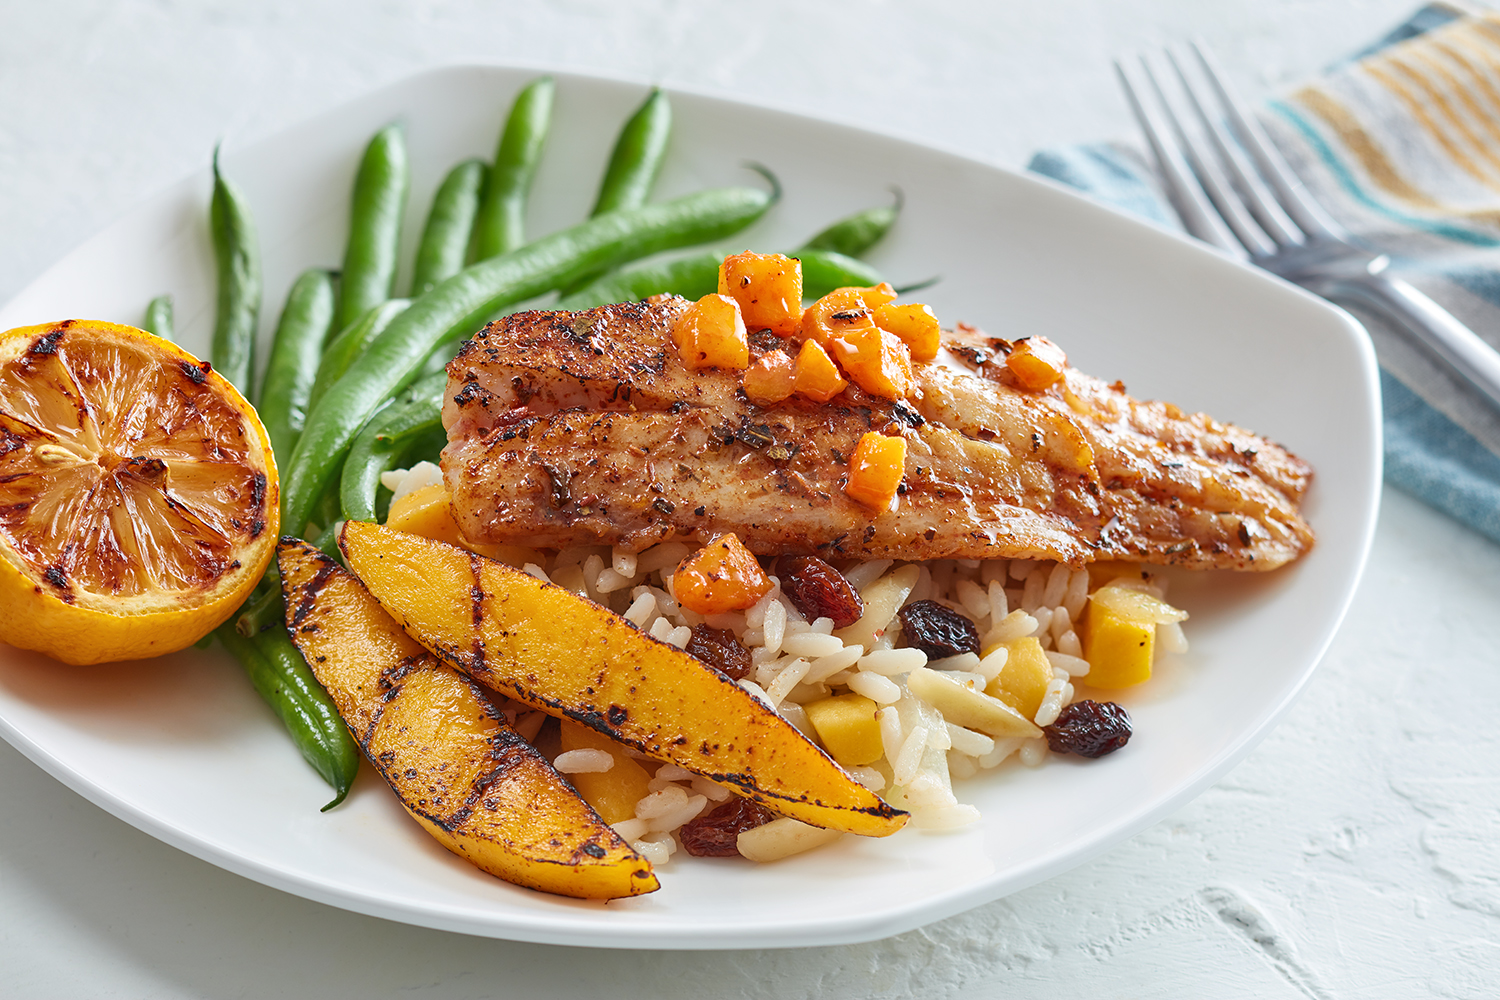 Snapper fillets with mango